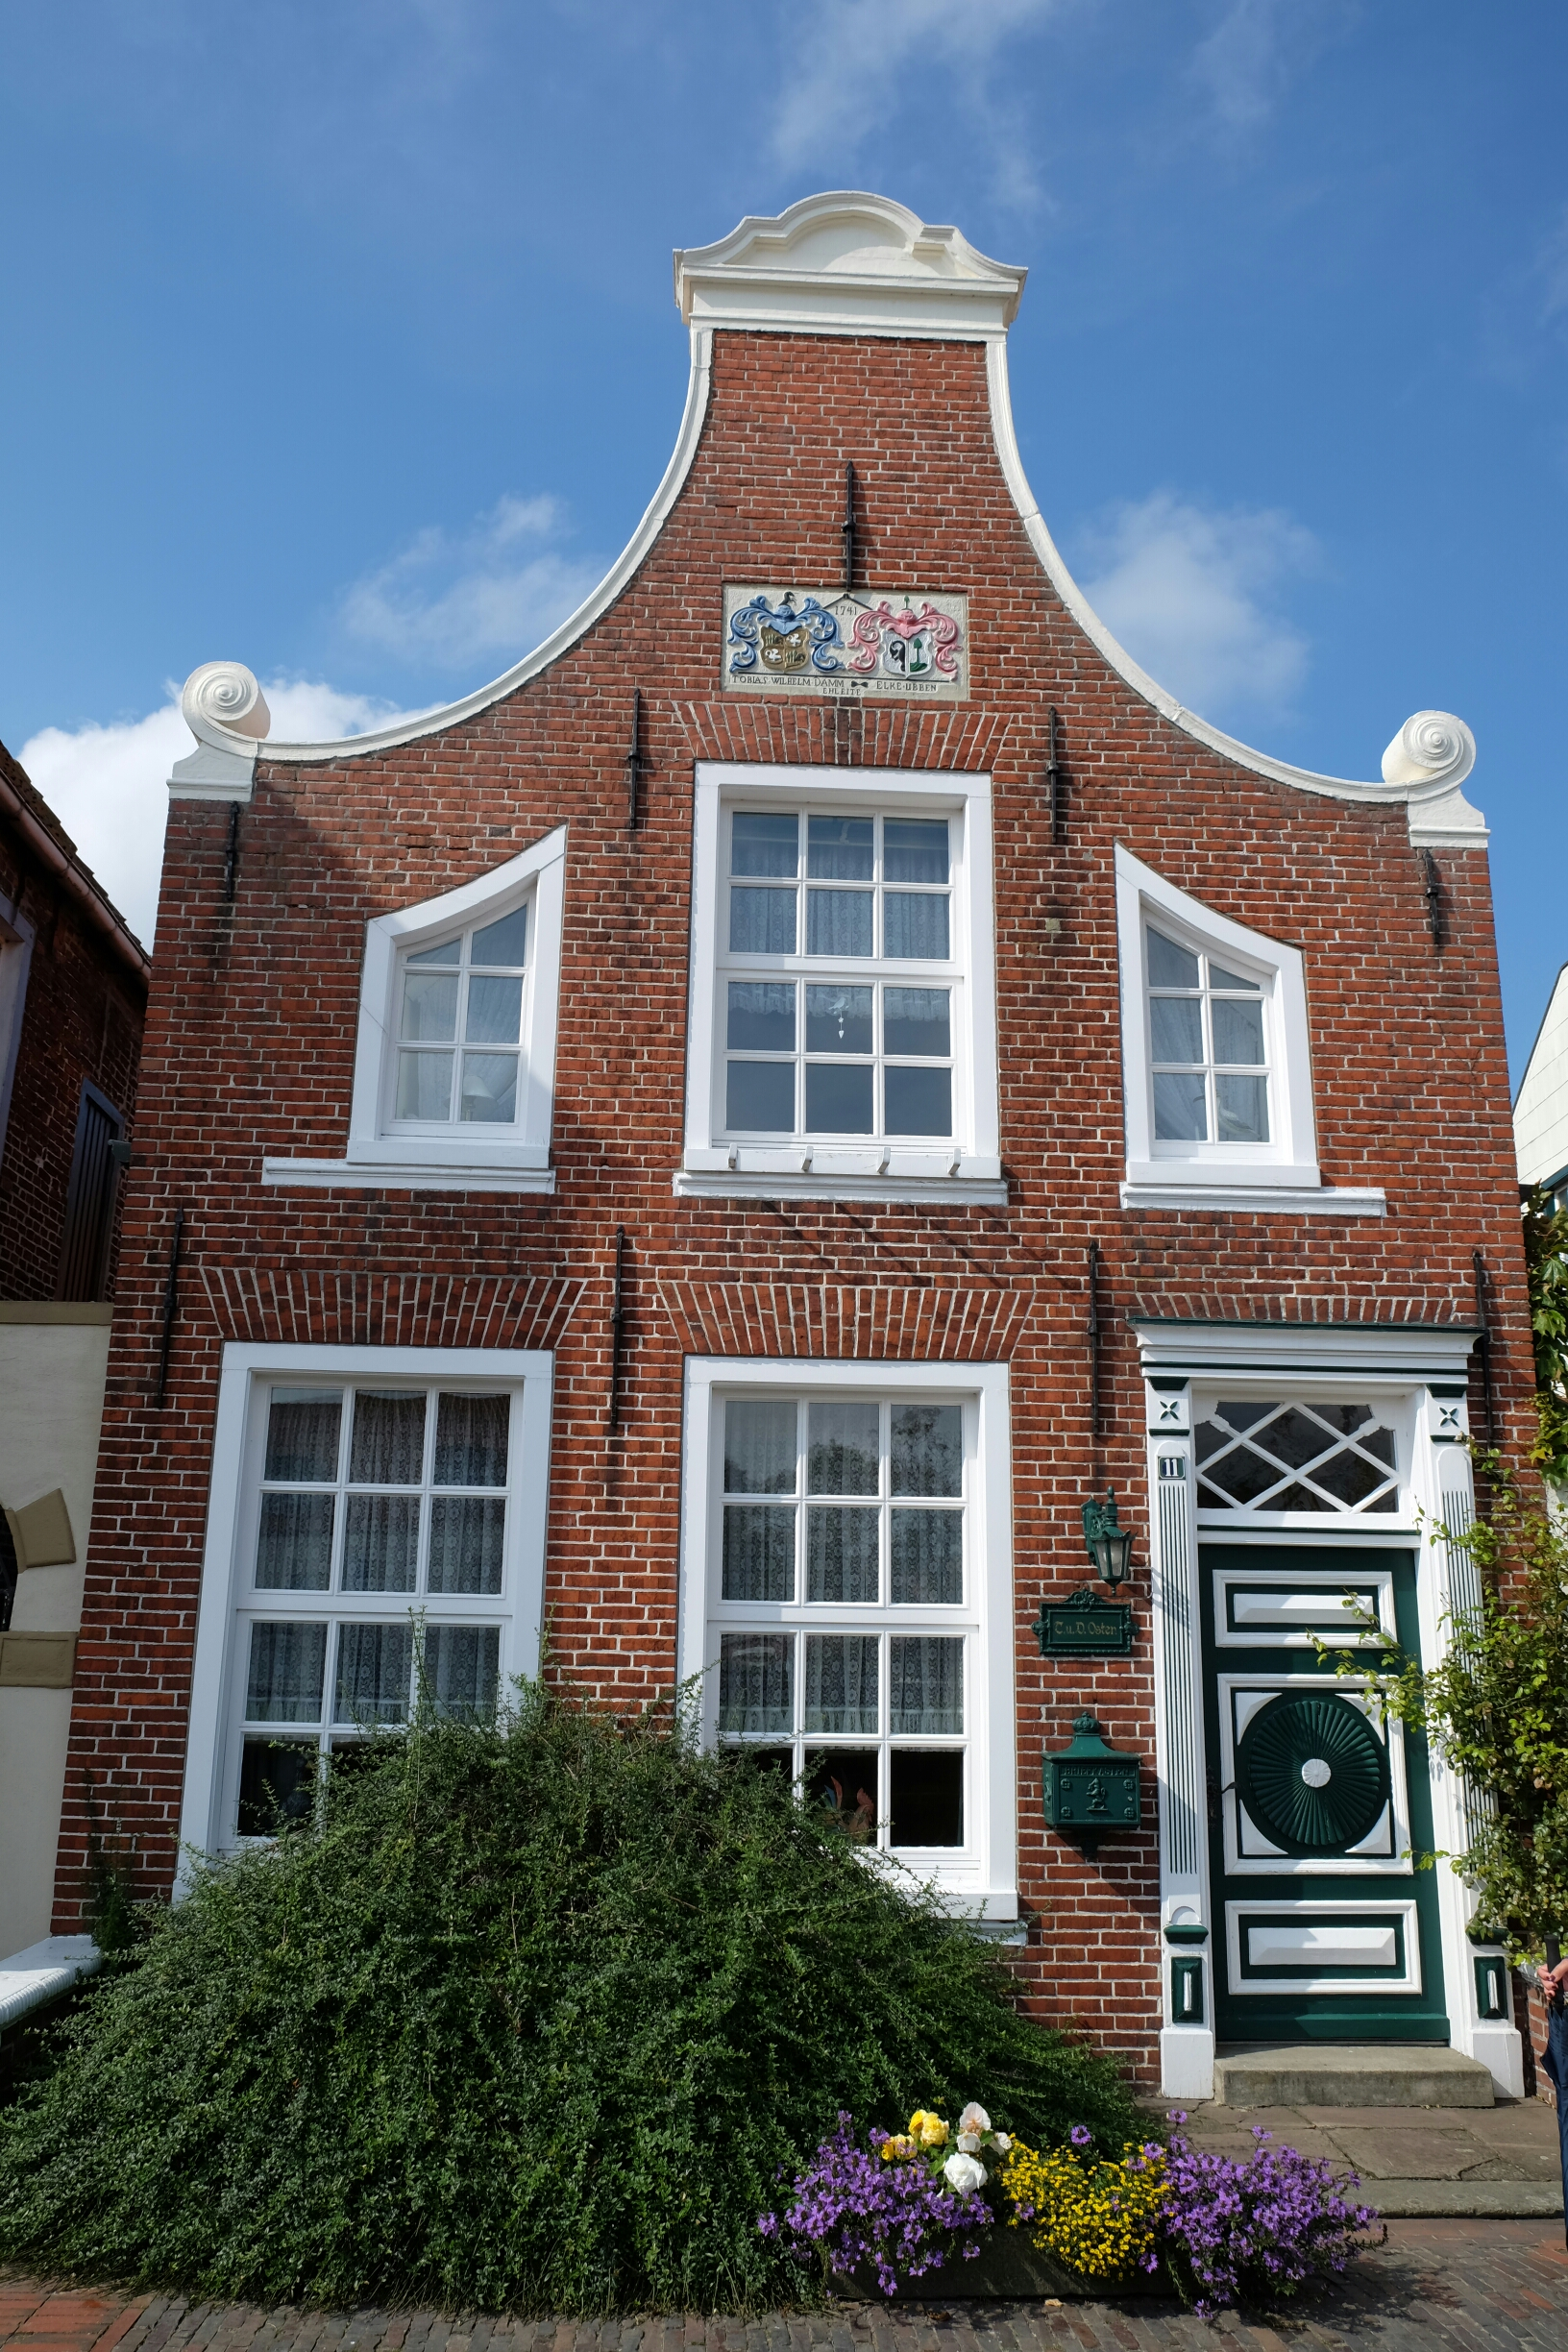 Haus in Greetsiel